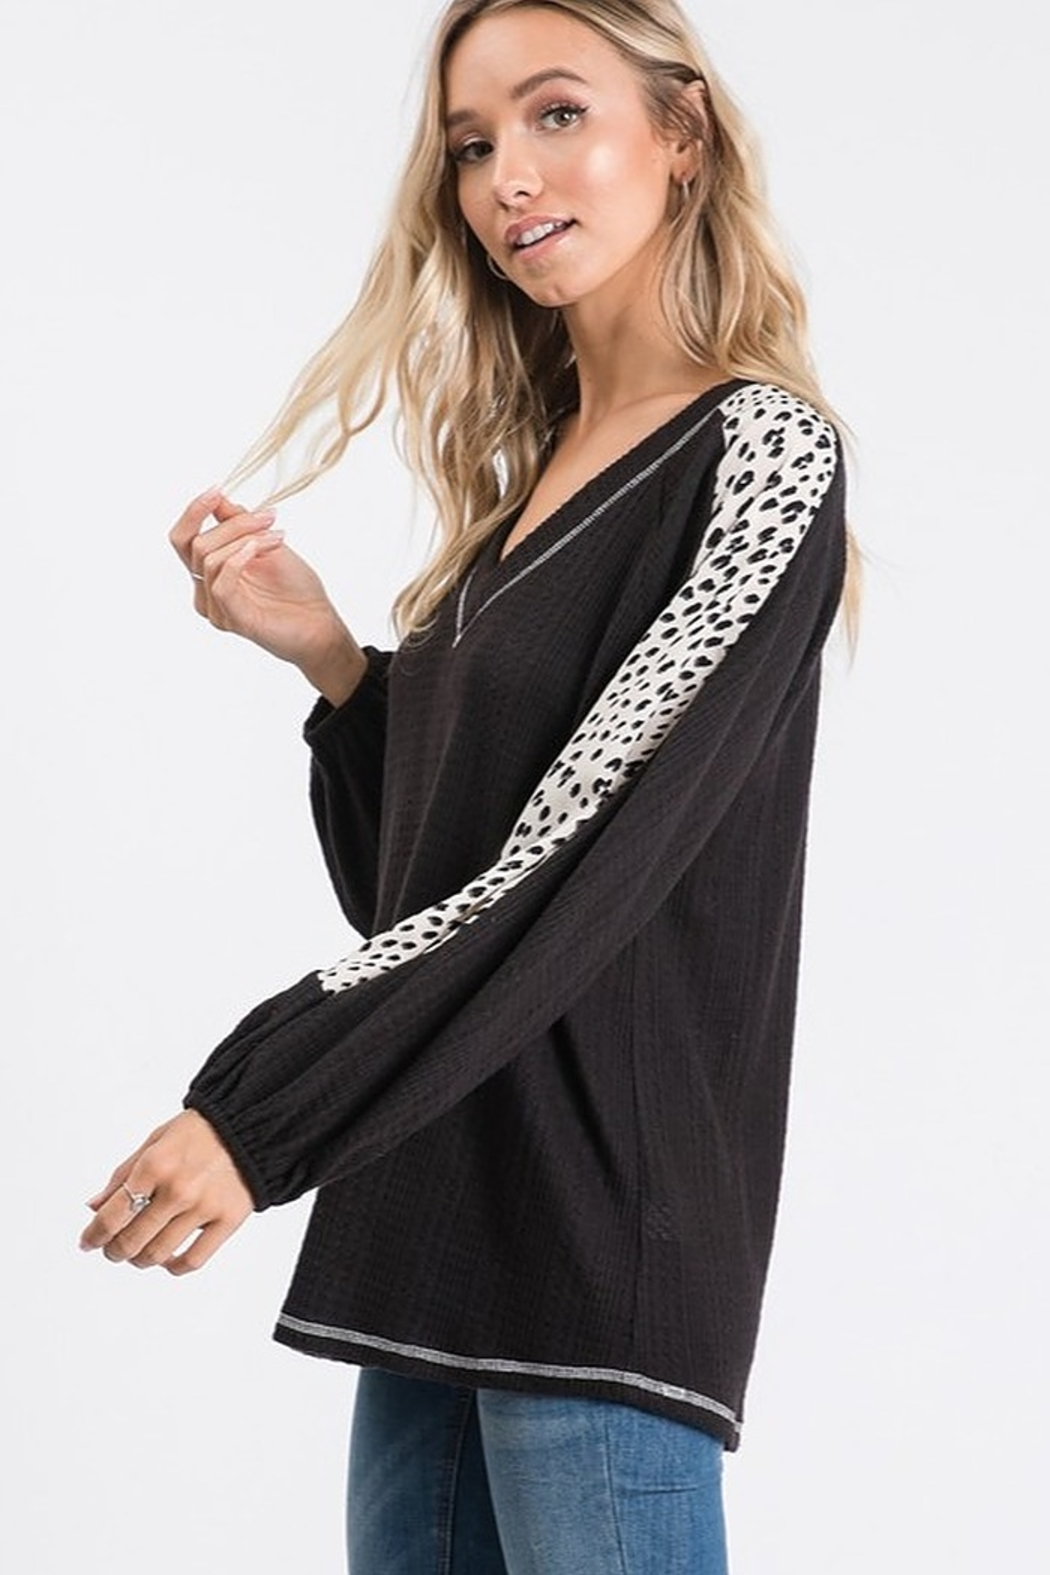 Hailey & Co Animal Print Sleeve Top - Side Cropped Image